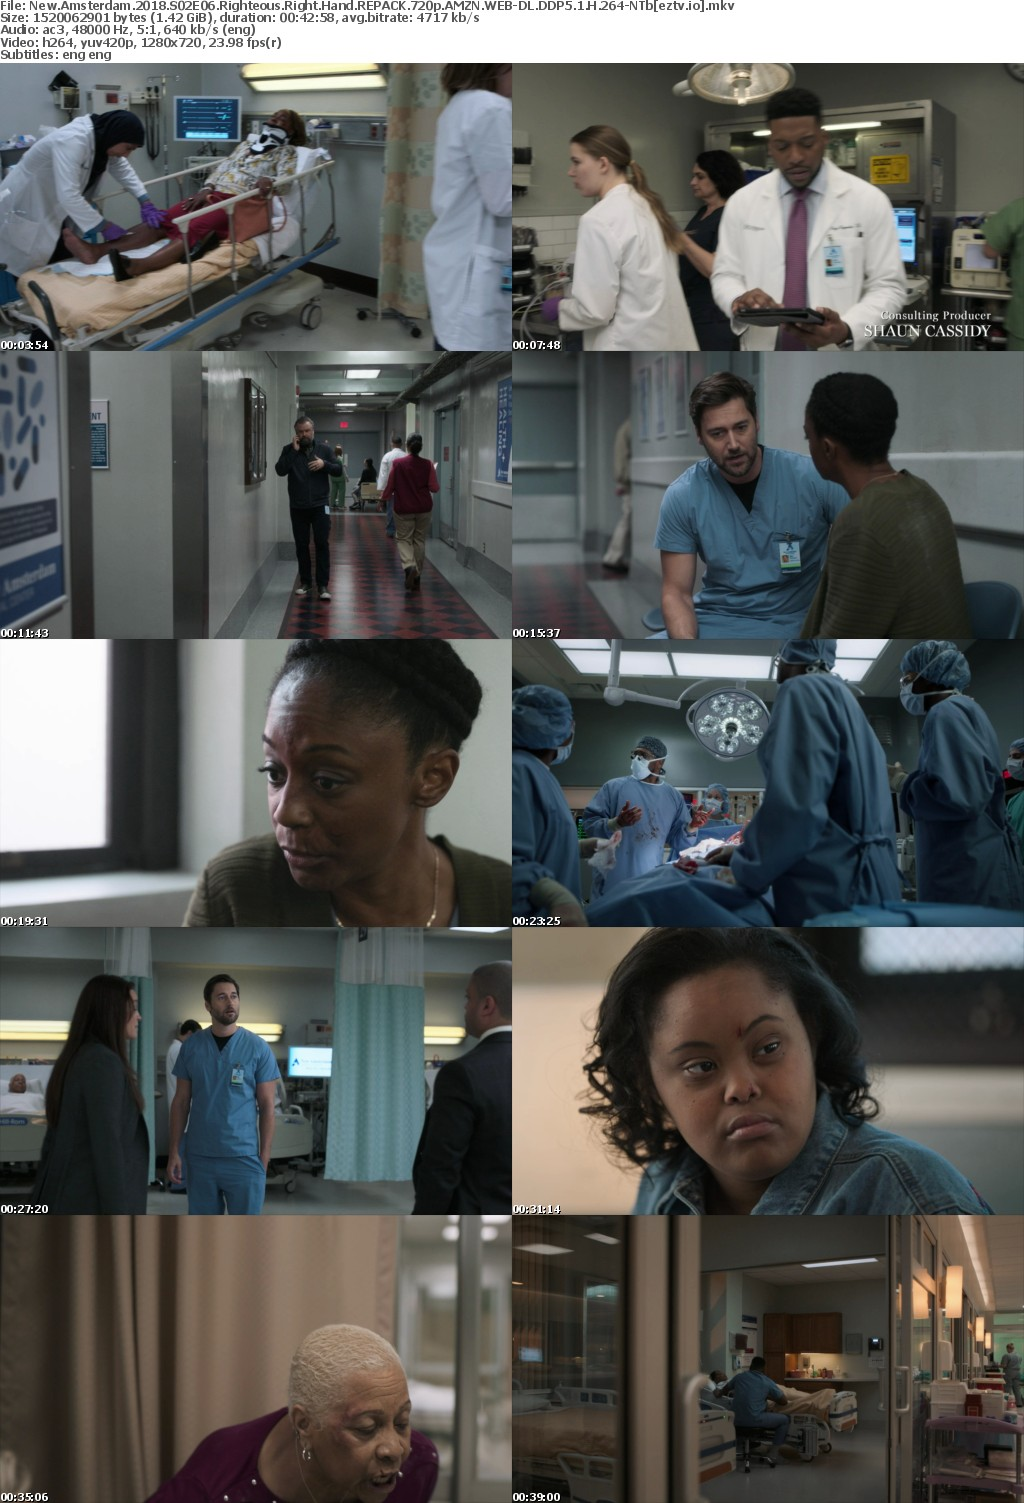 New Amsterdam 2018 S02E06 Righteous Right Hand REPACK 720p AMZN WEB-DL DDP5 1 H 264-NTb